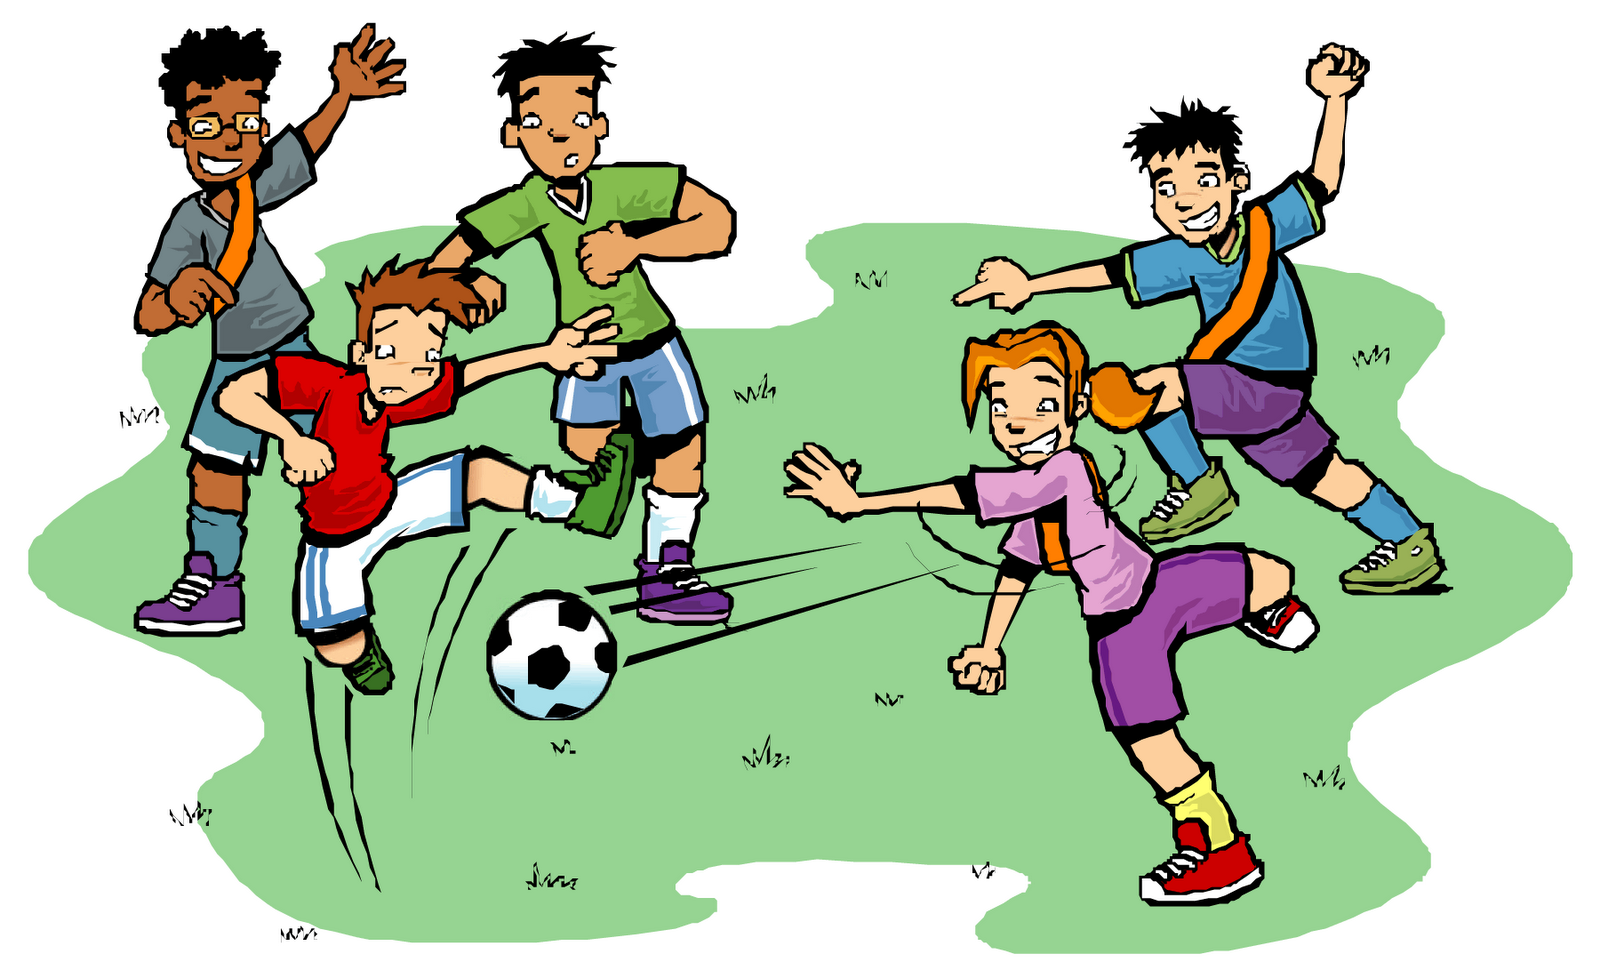 soccer team clipart at getdrawings com free for personal use rh getdrawings com football game clipart images football game clipart free